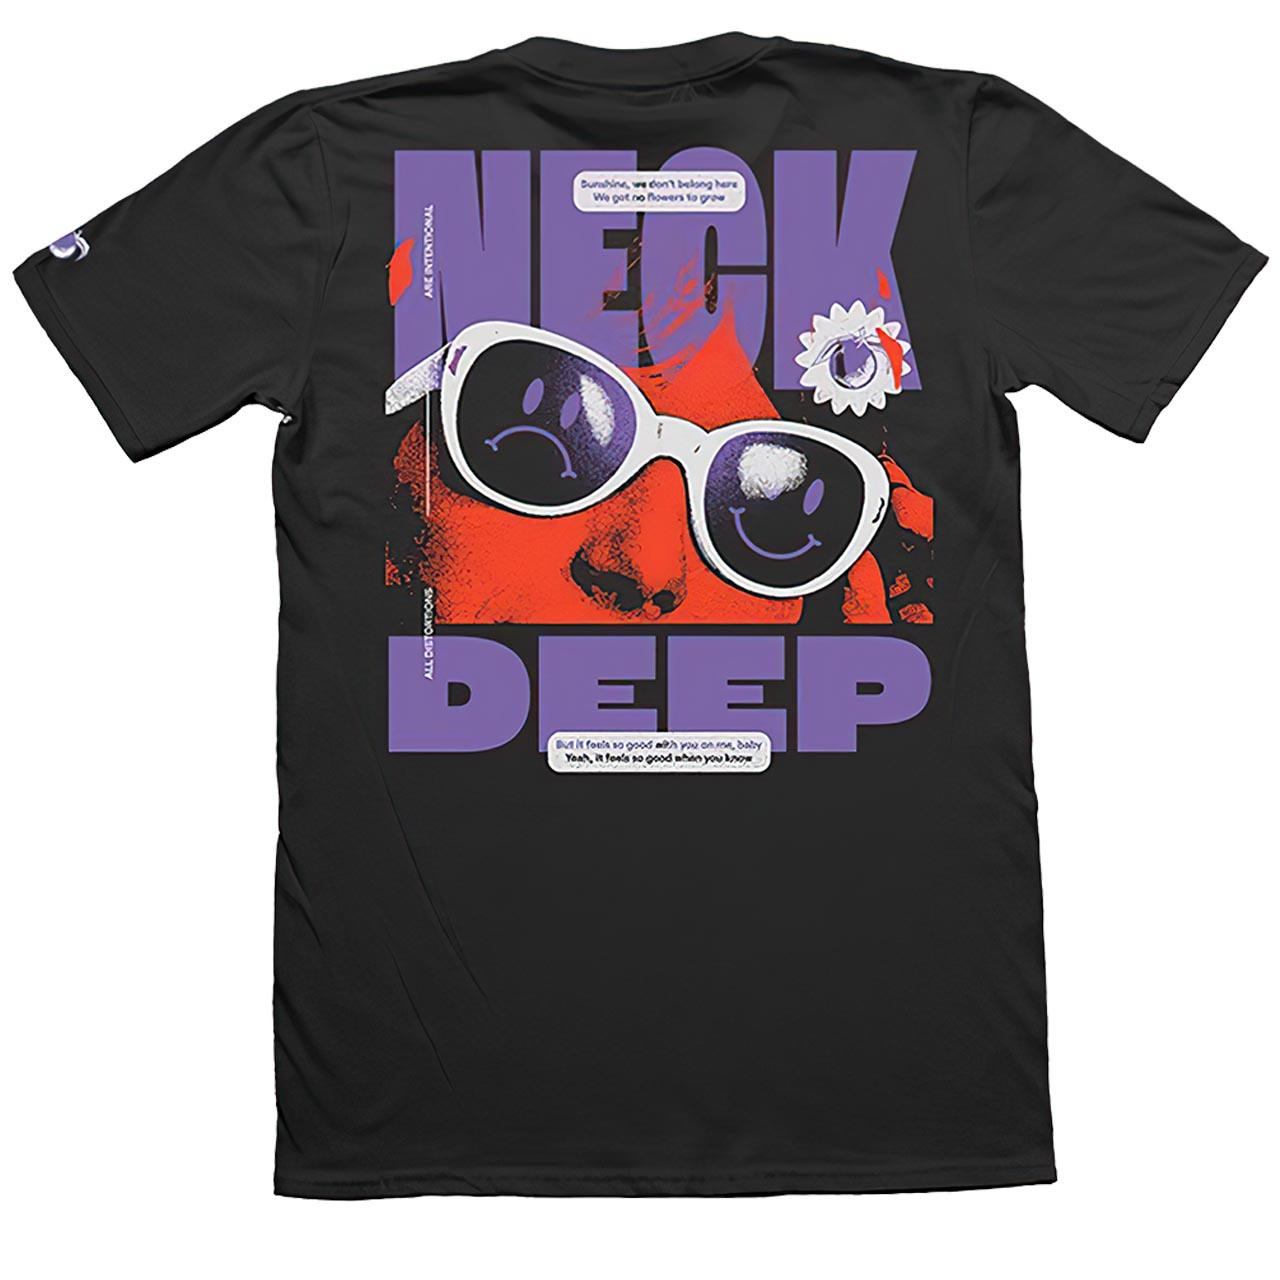 NECK DEEP Sunglasses Tshirt Back